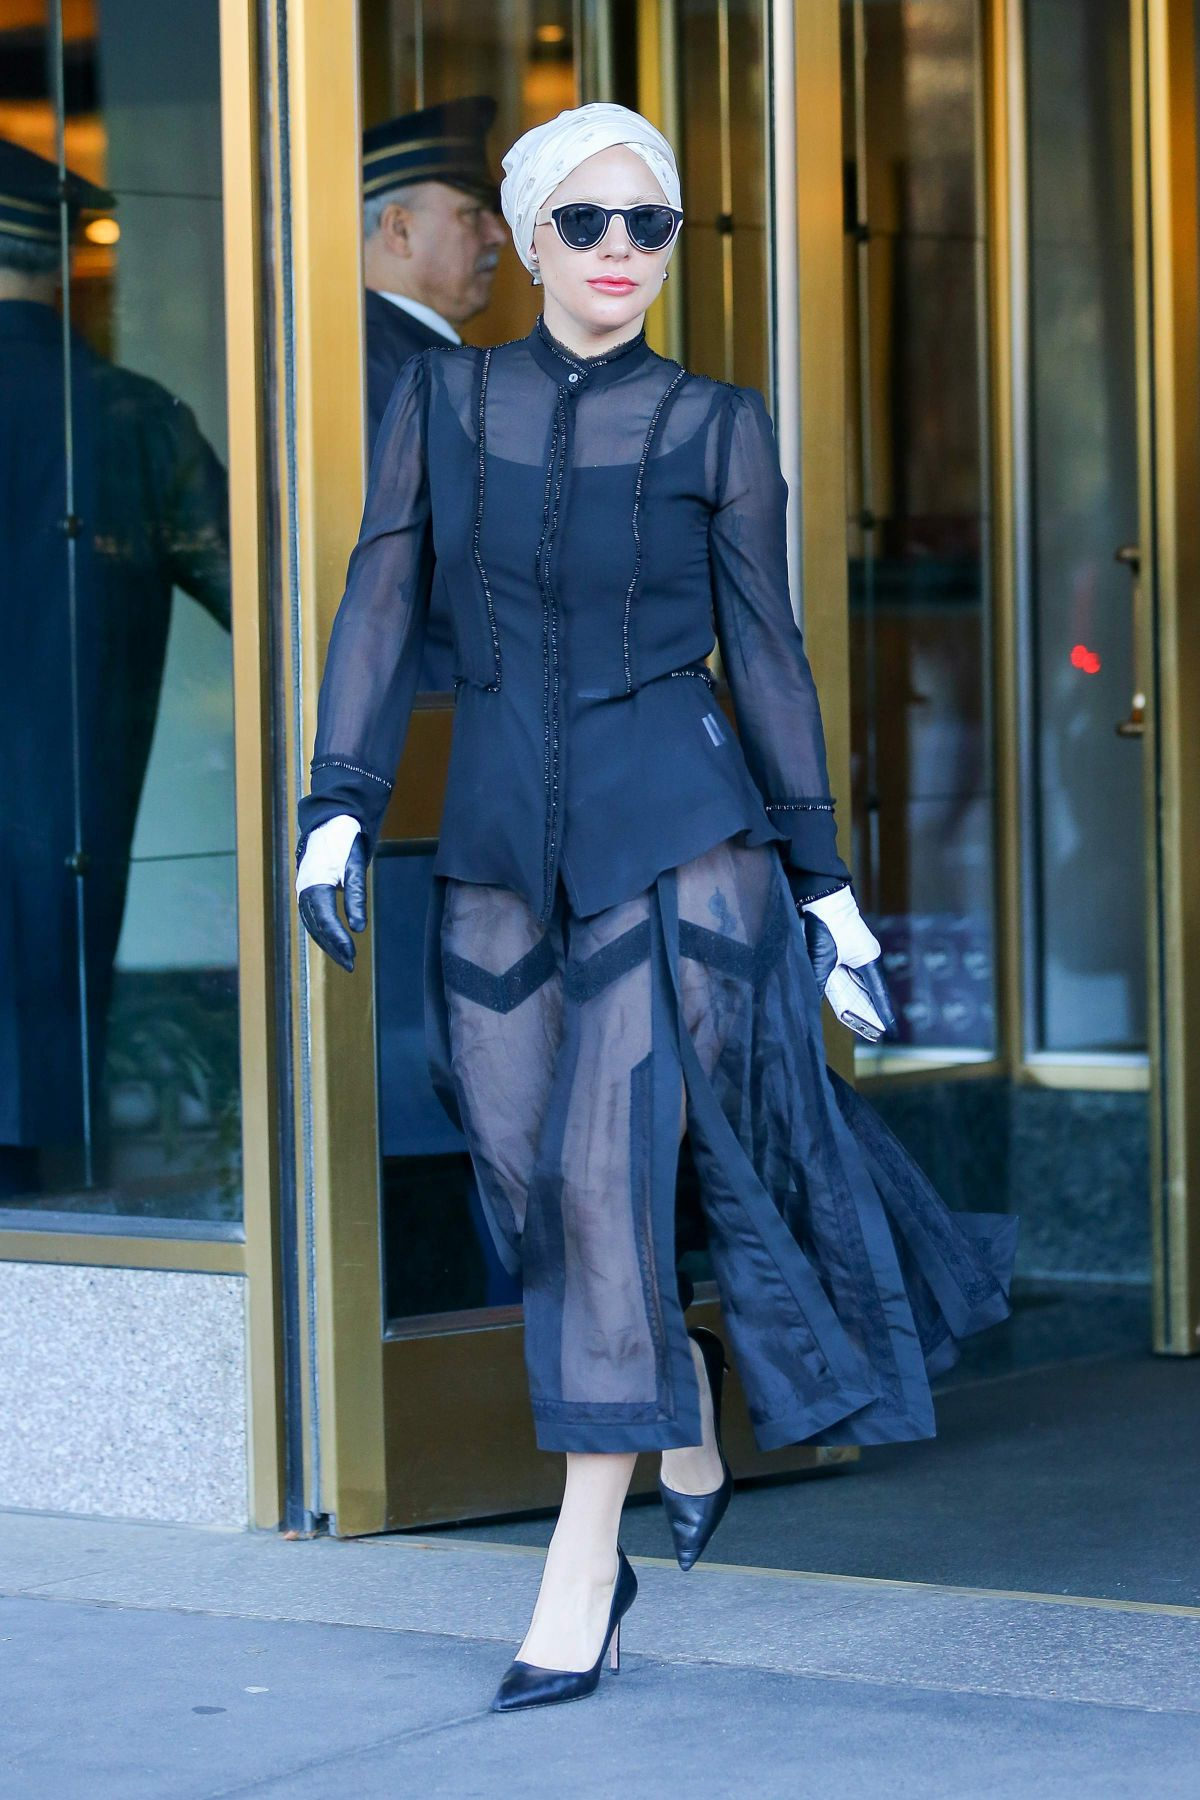 Lady Gaga Leaving Her Apartment Building In New York City